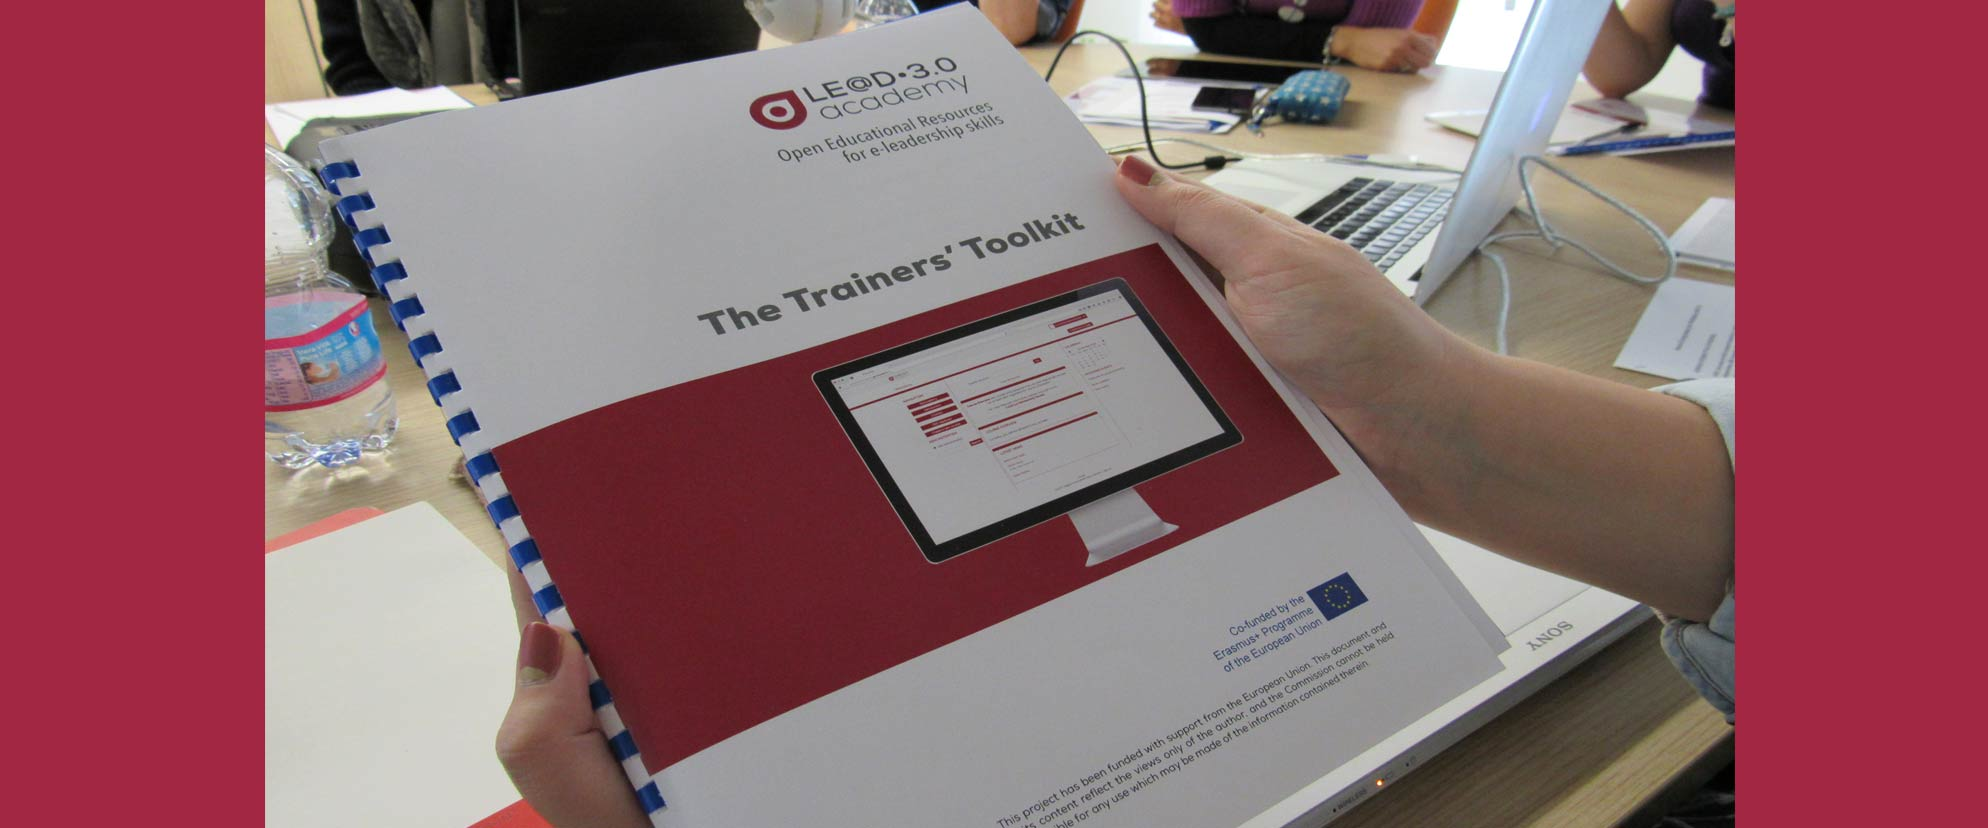 Hands holding The Trainers' Toolkit